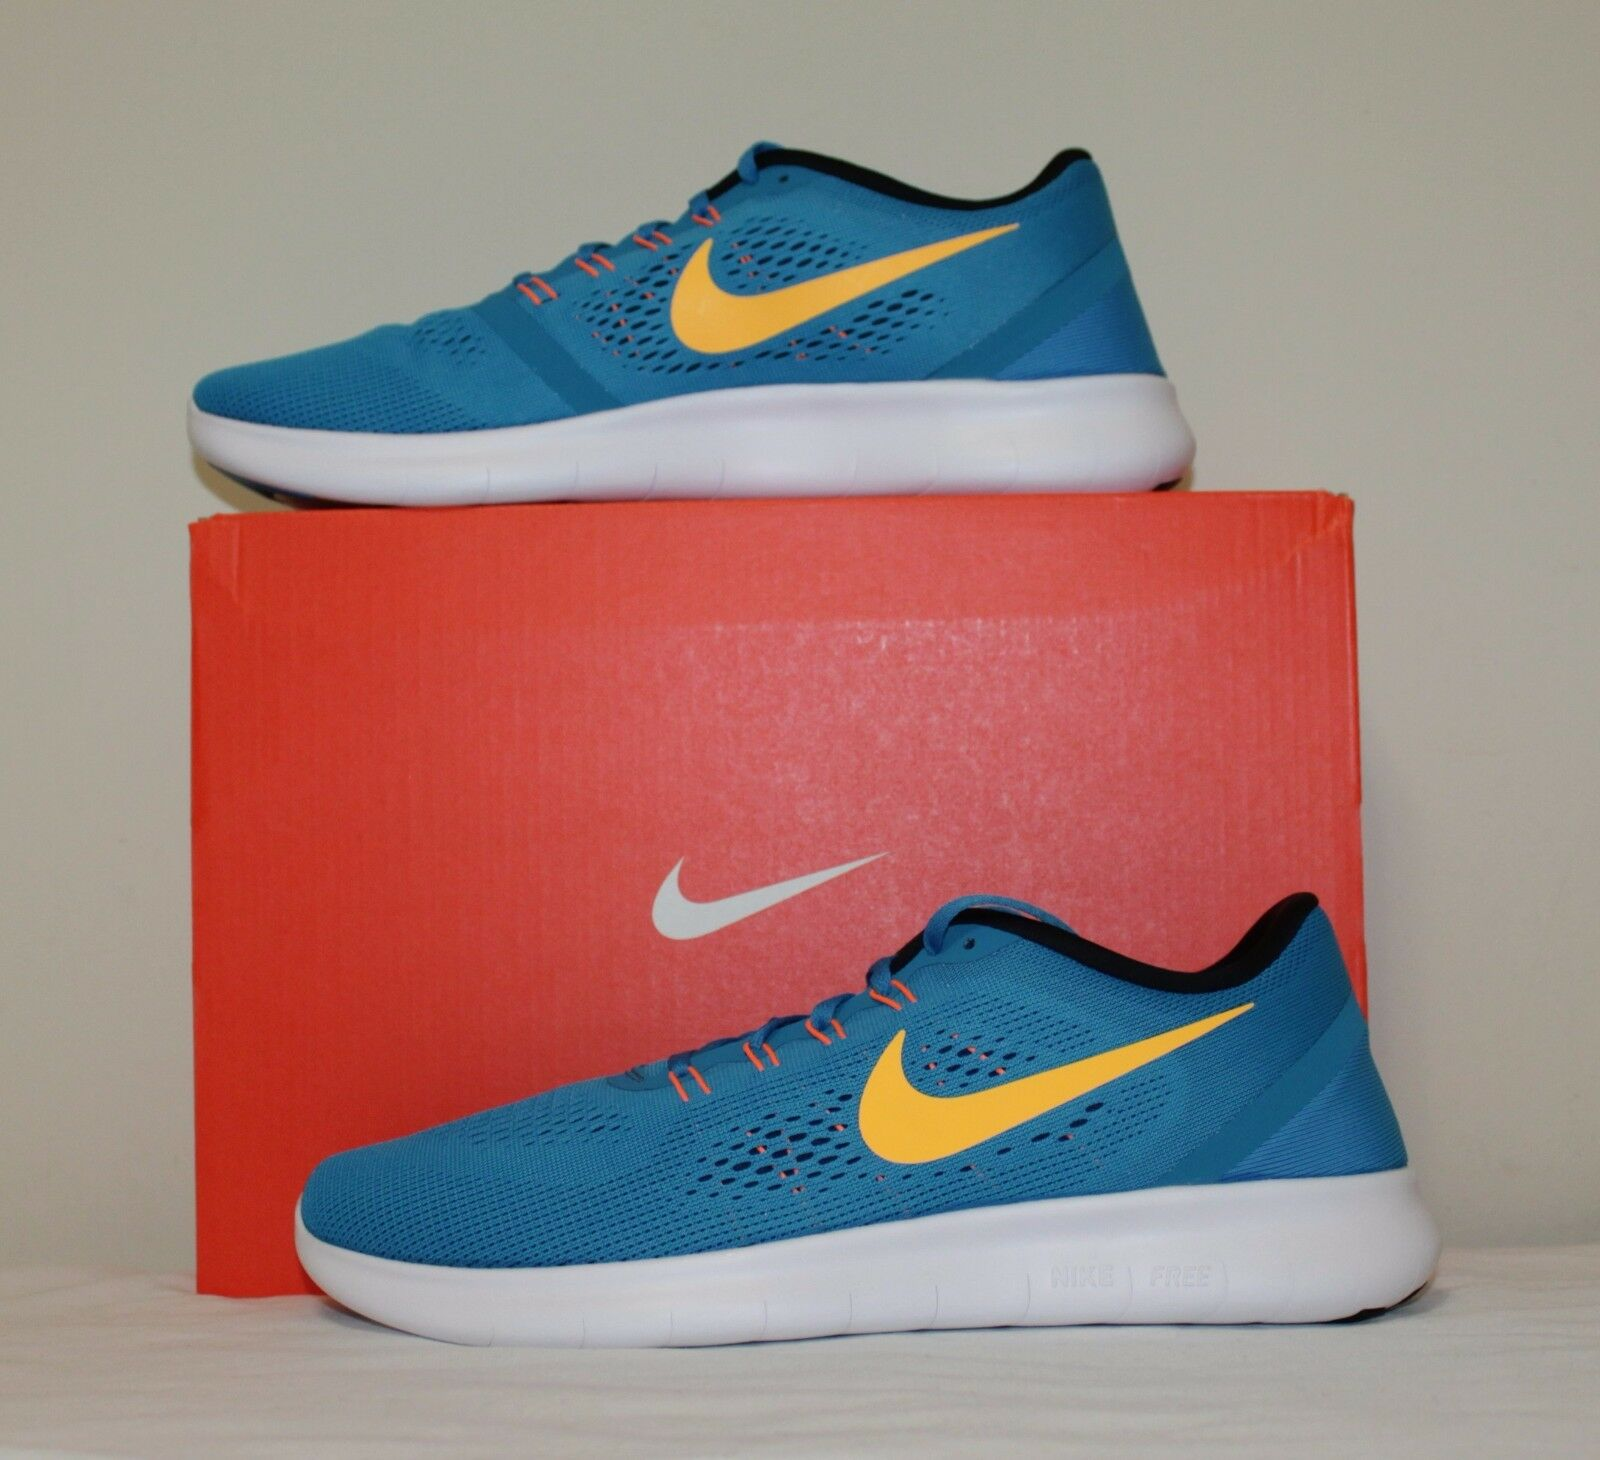 Nike Men Air Free running sneaker shoes size 11 new with box